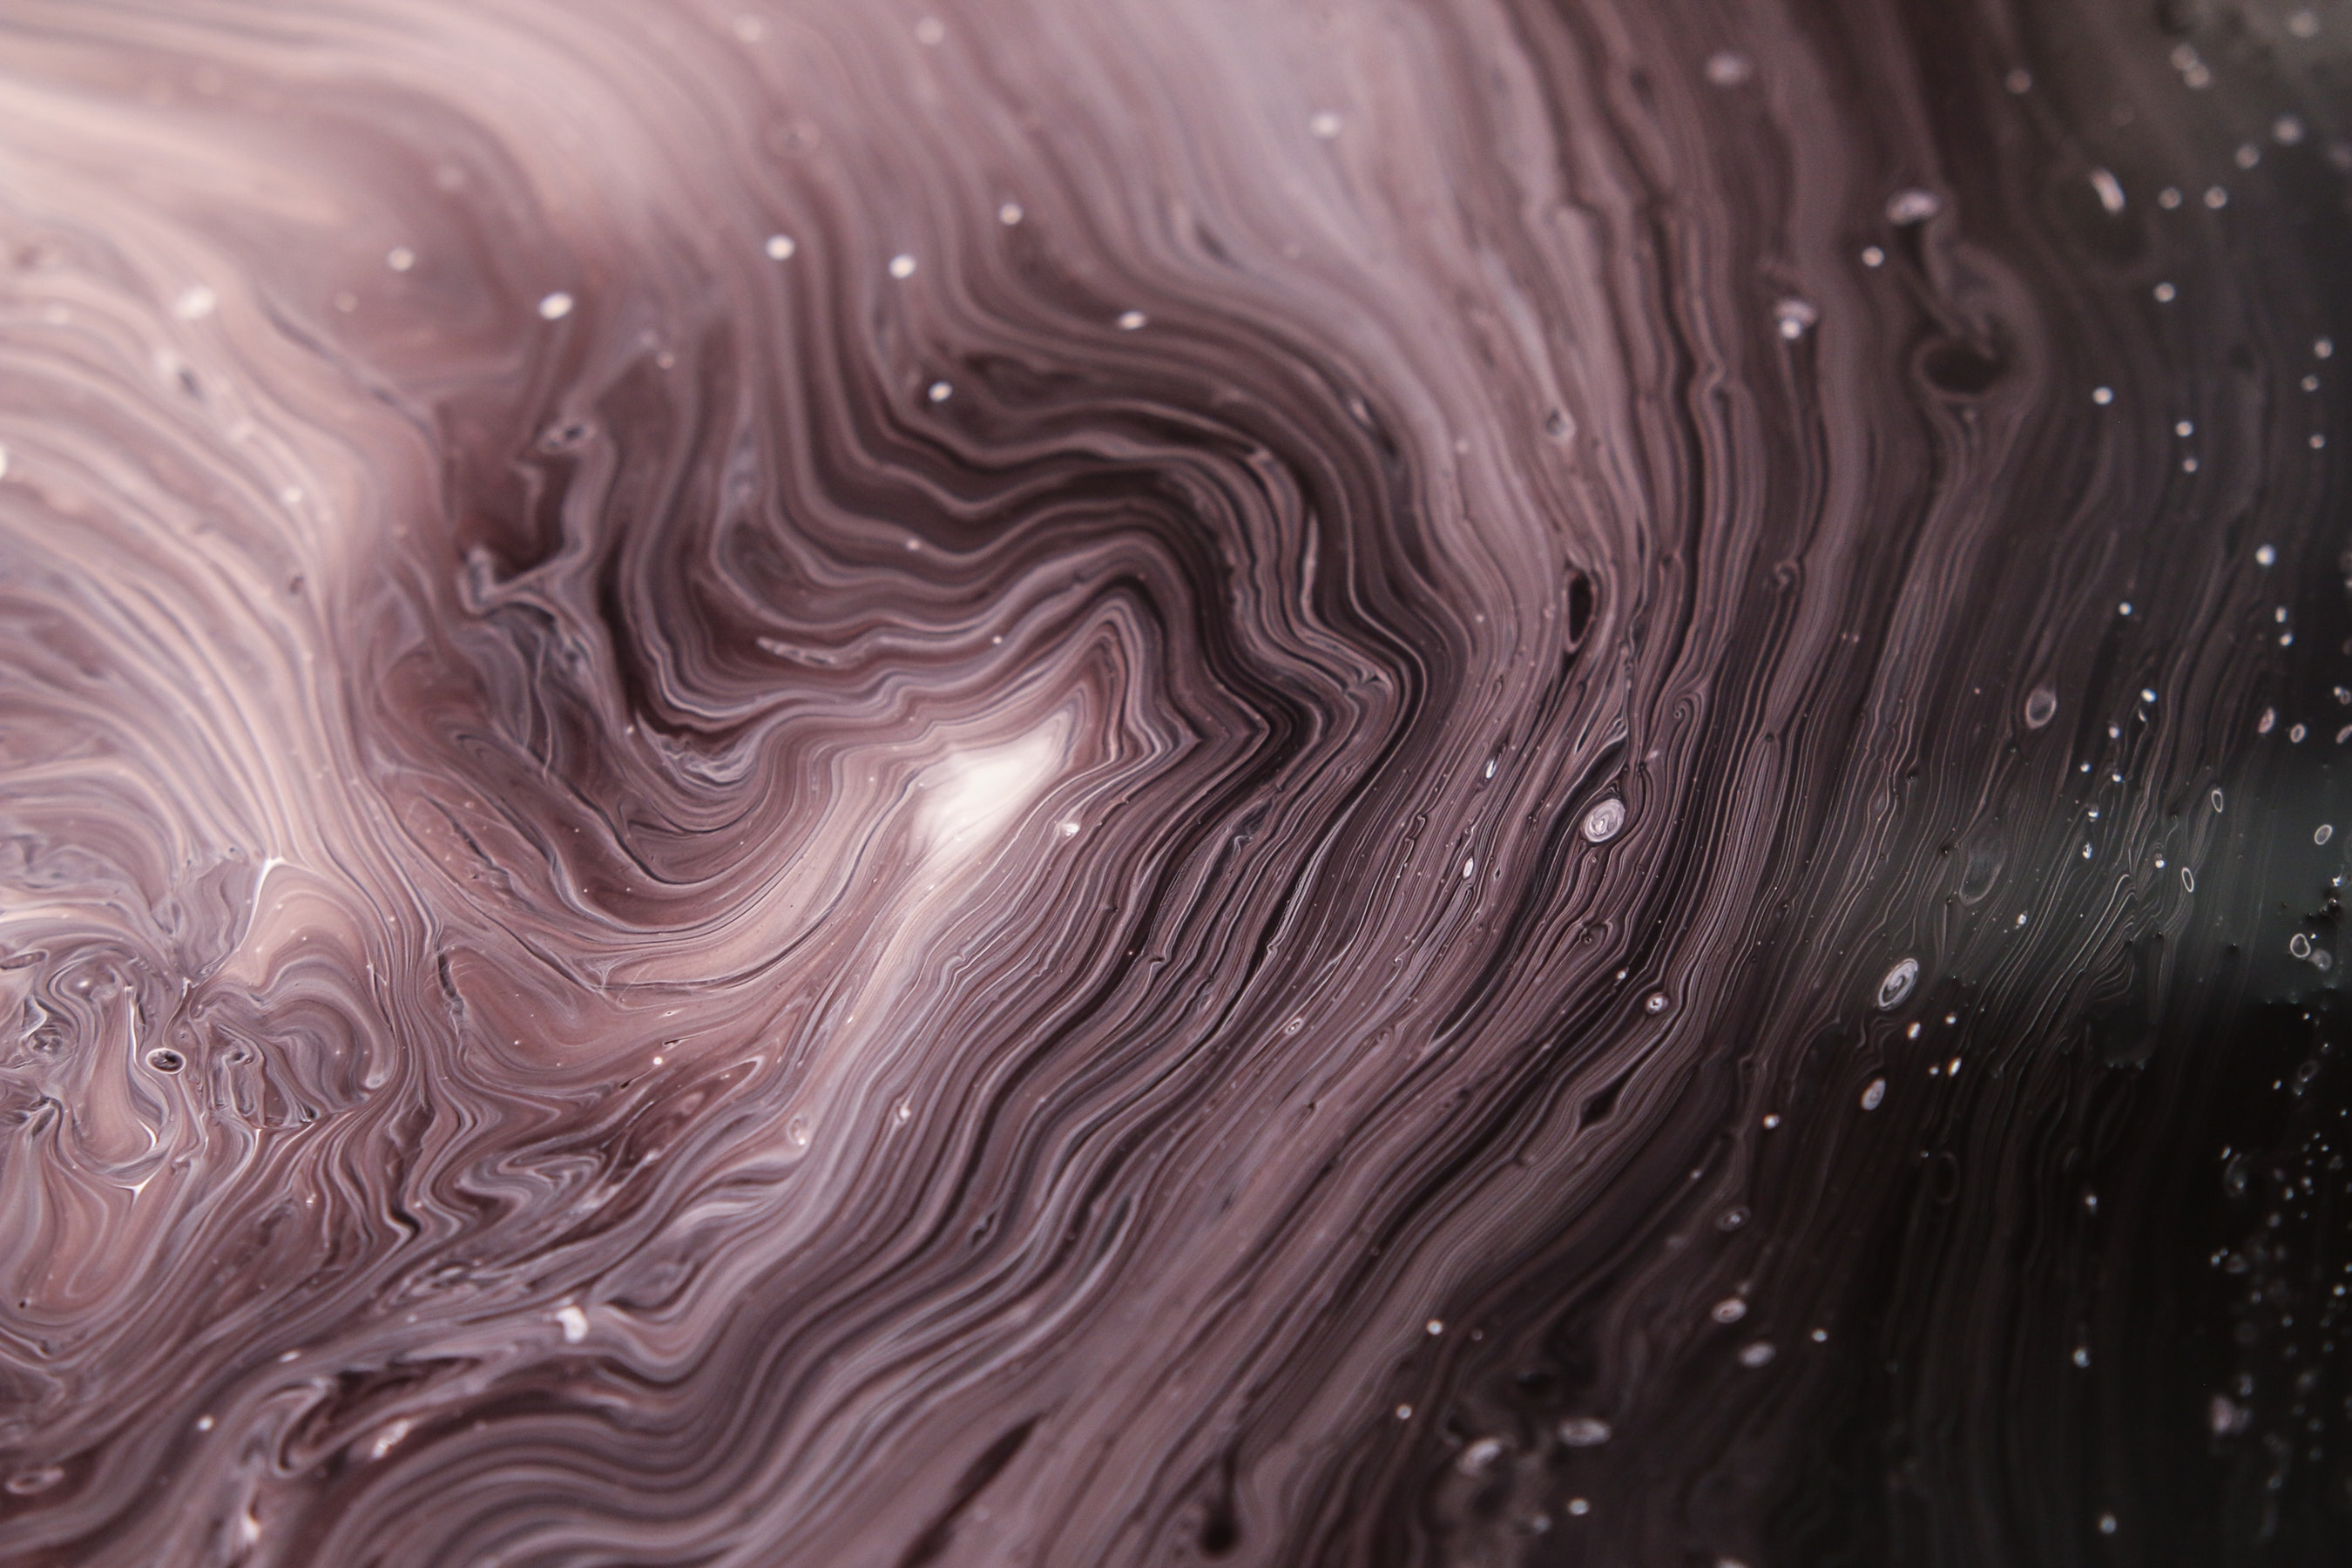 Herofonts background